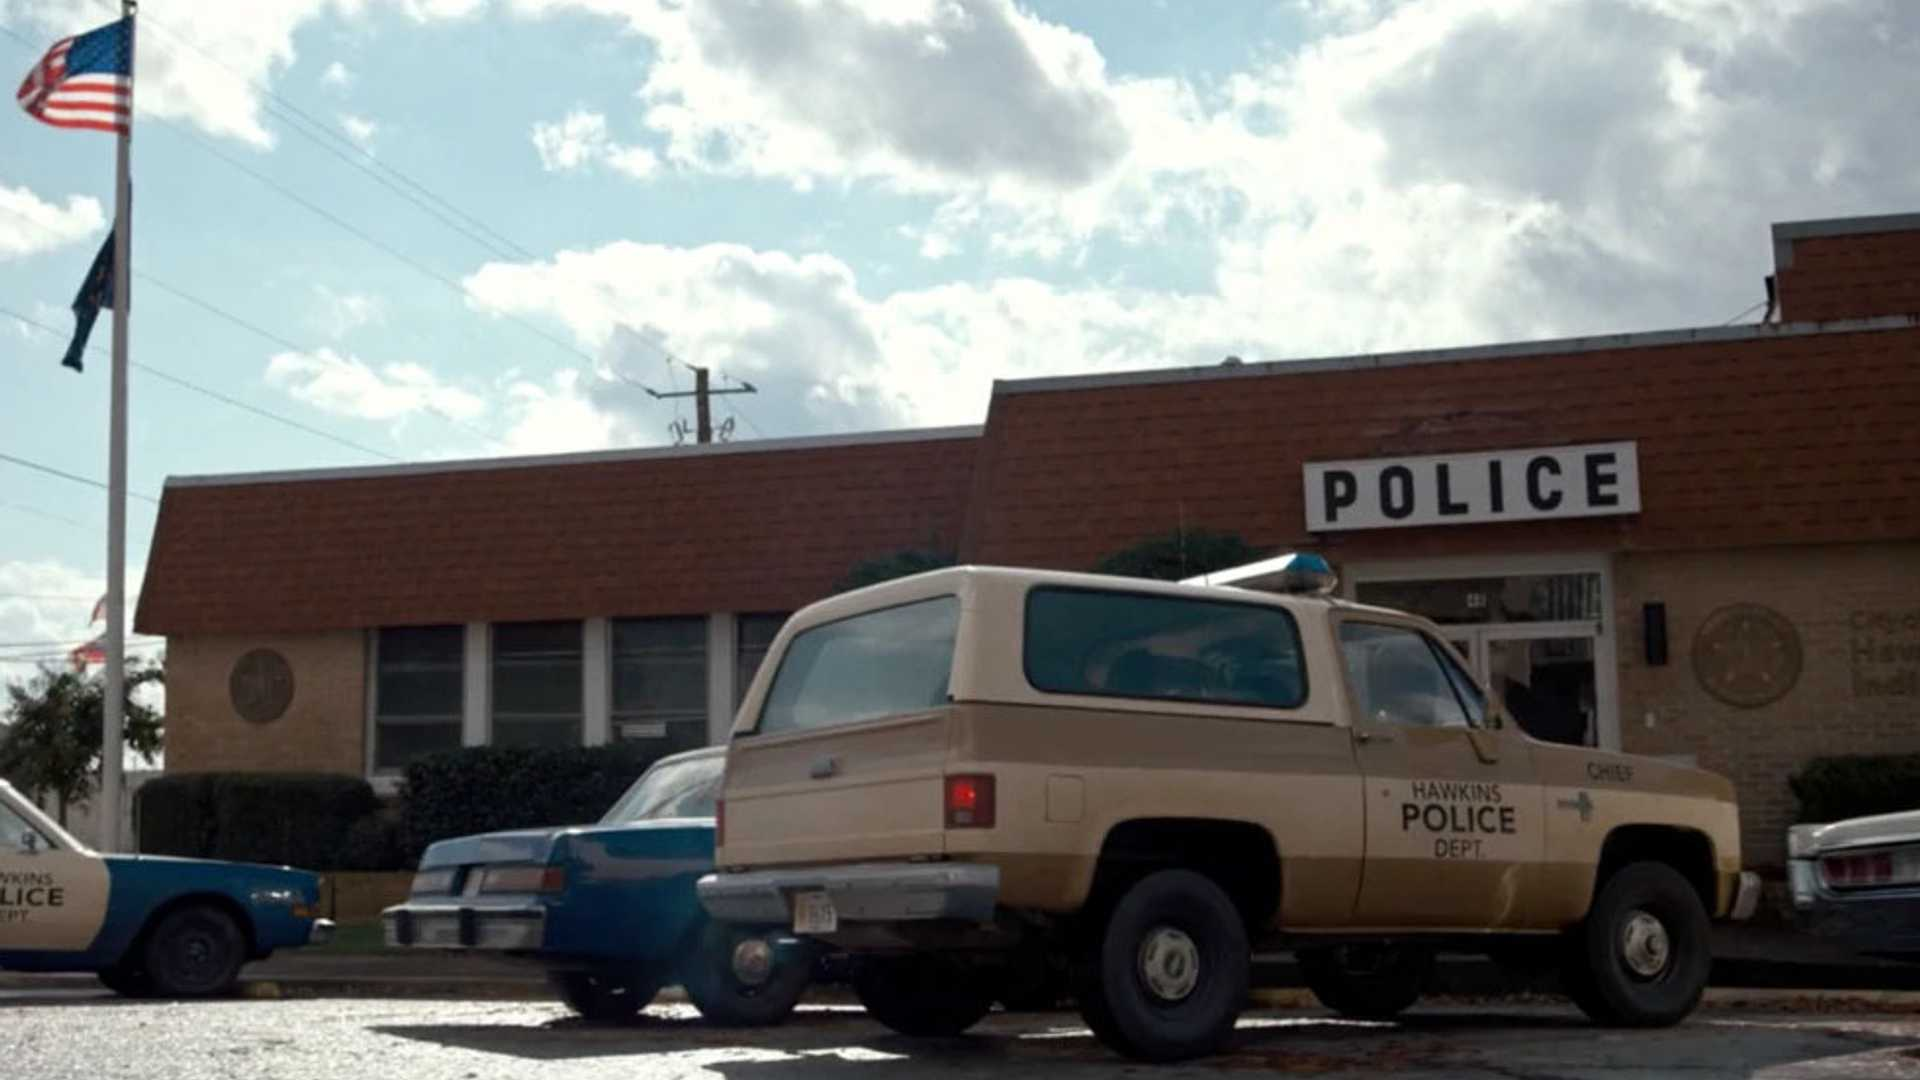 A Look At The Cars Featured In 'Stranger Things' | Motorious